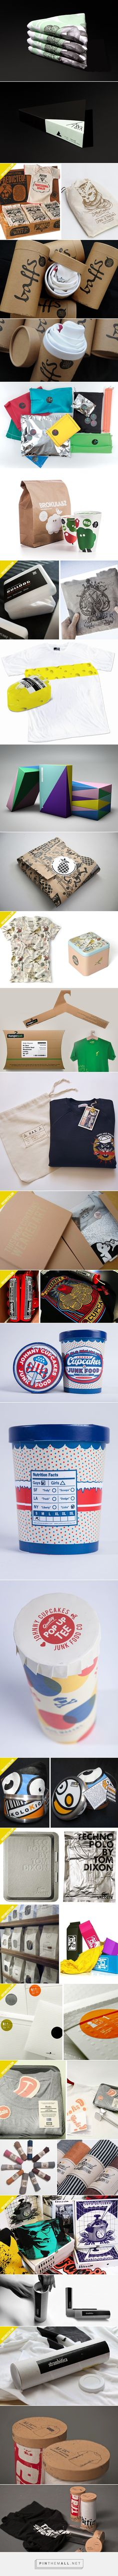 25 Cool T-shirt Packaging Design Examples – Part 2 - Printsome Blog - created via https://pinthemall.net